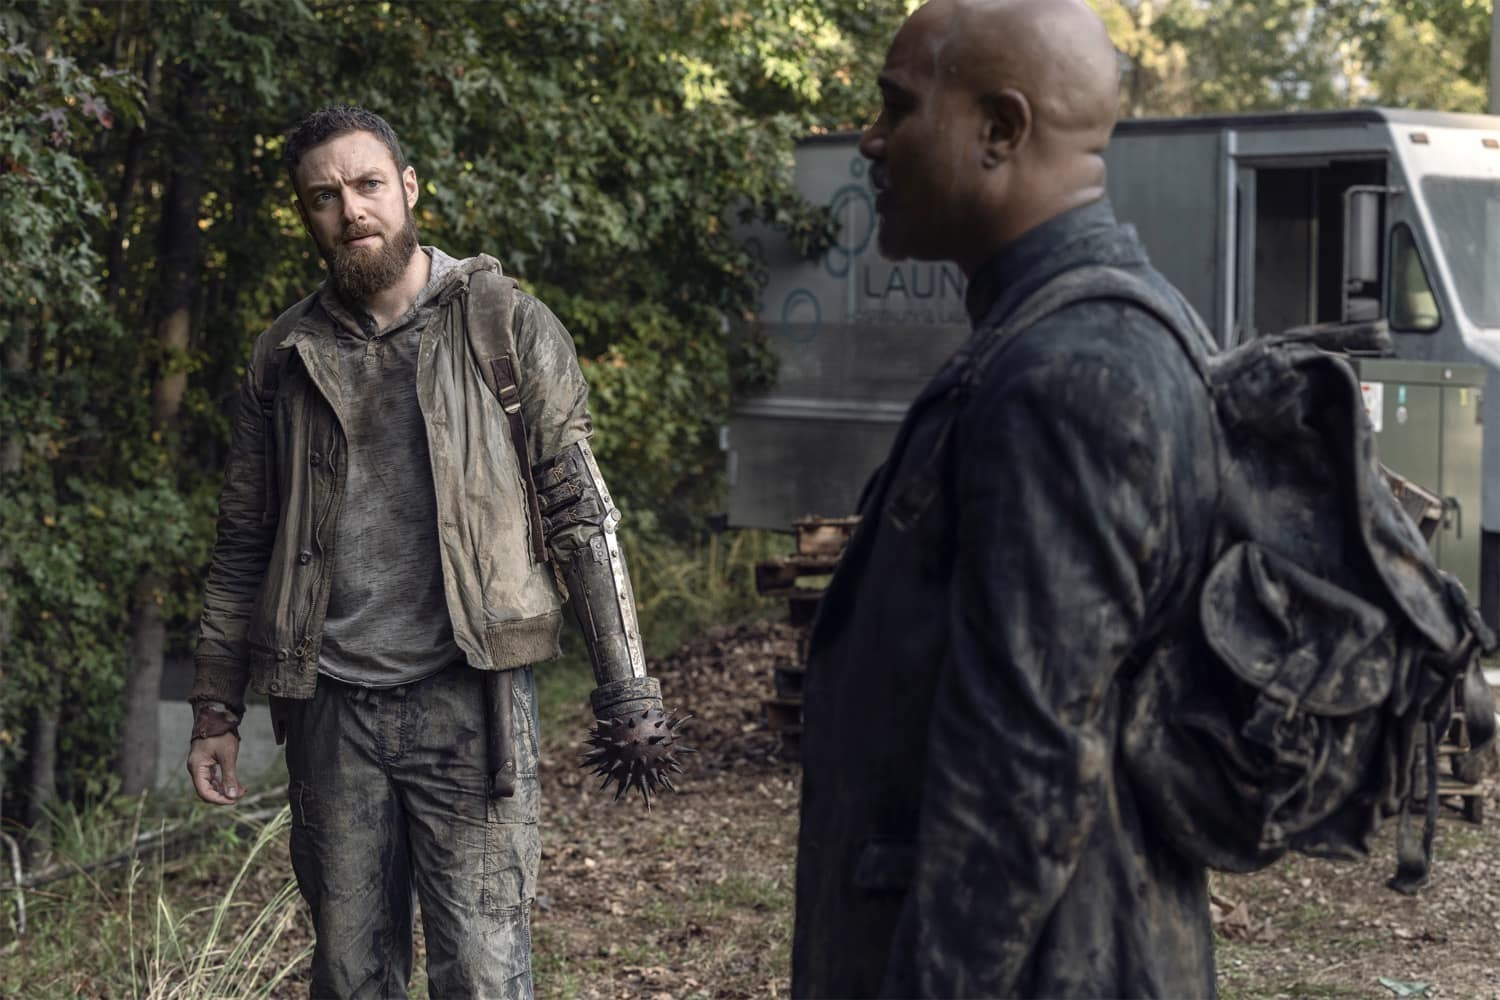 Ross Marquand as Aaron, Seth Gilliam as Gabriel - The Walking Dead _ Season 10, Episode 19 - Photo Credit: Josh Stringer/AMC